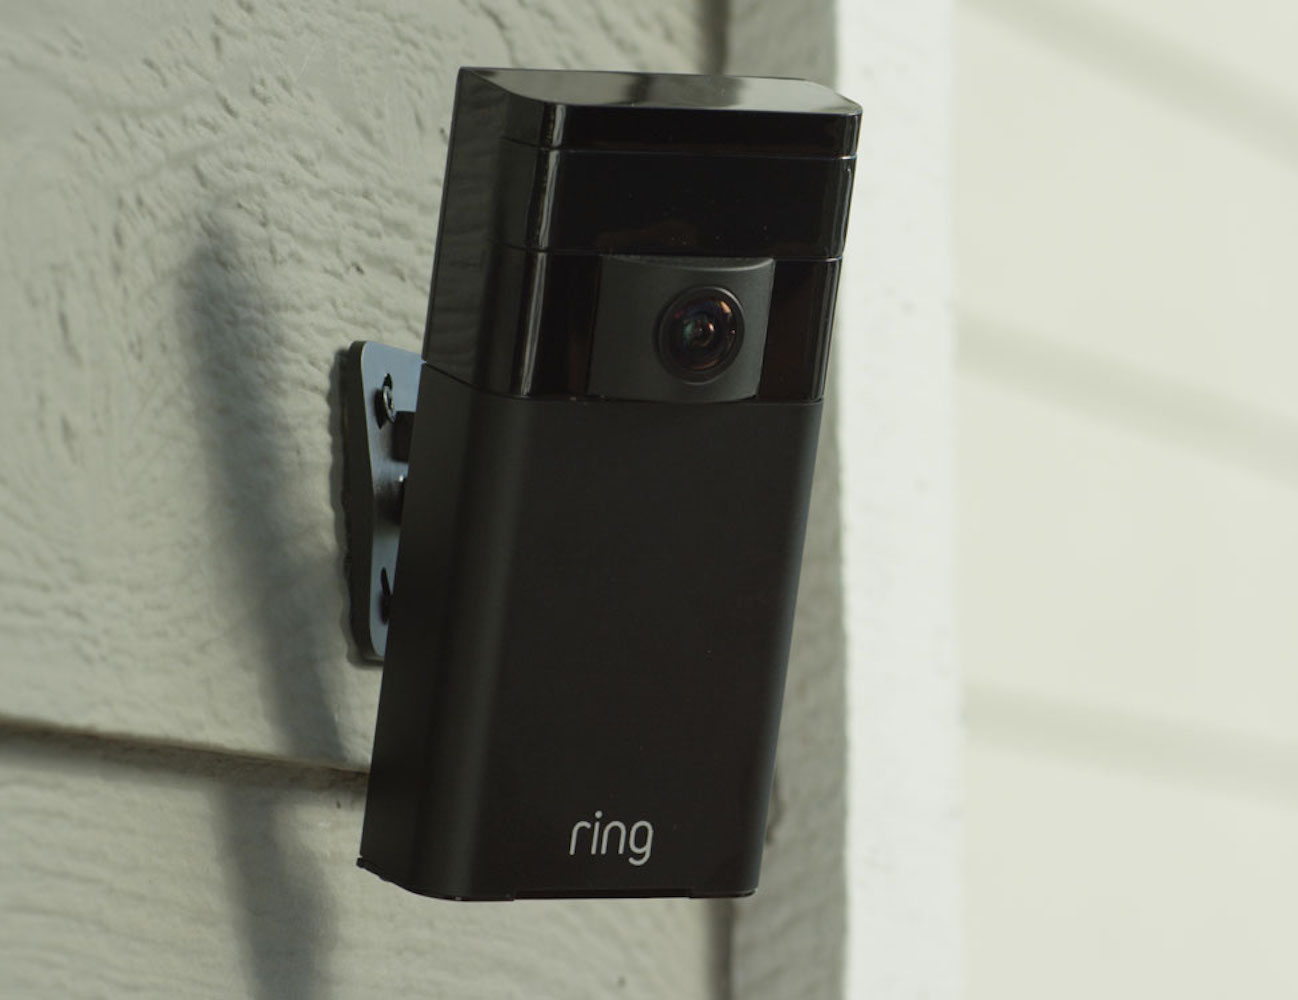 Ring Stick Up Cam Security Camera 187 Review